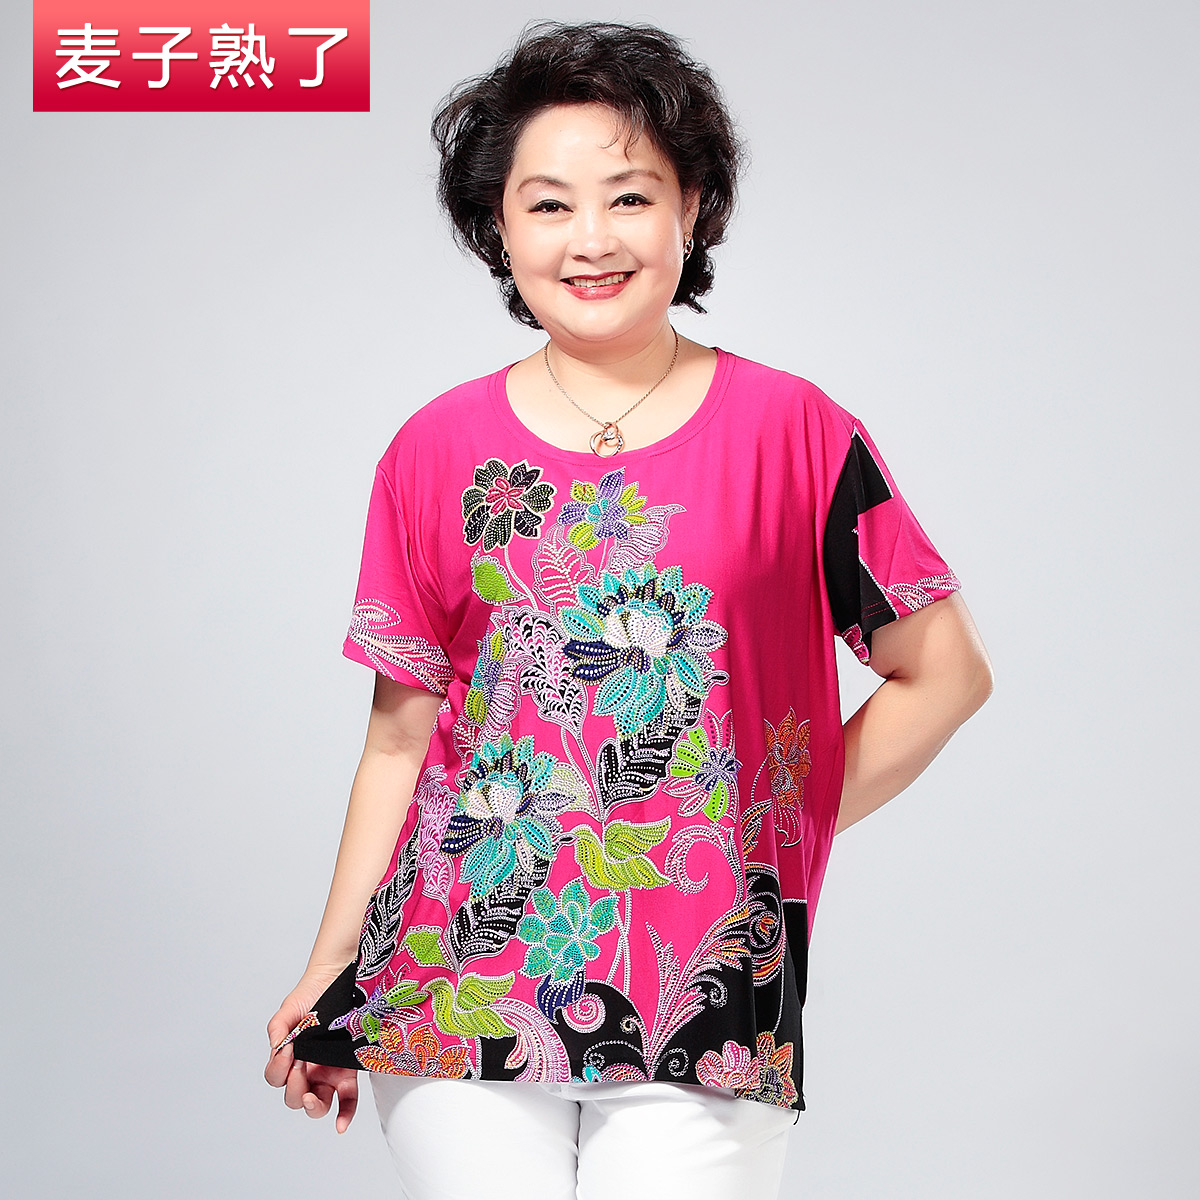 Quinquagenarian T-shirt women's short-sleeve o-neck loose tencel t-shirt plus size clothing summer(China (Mainland))